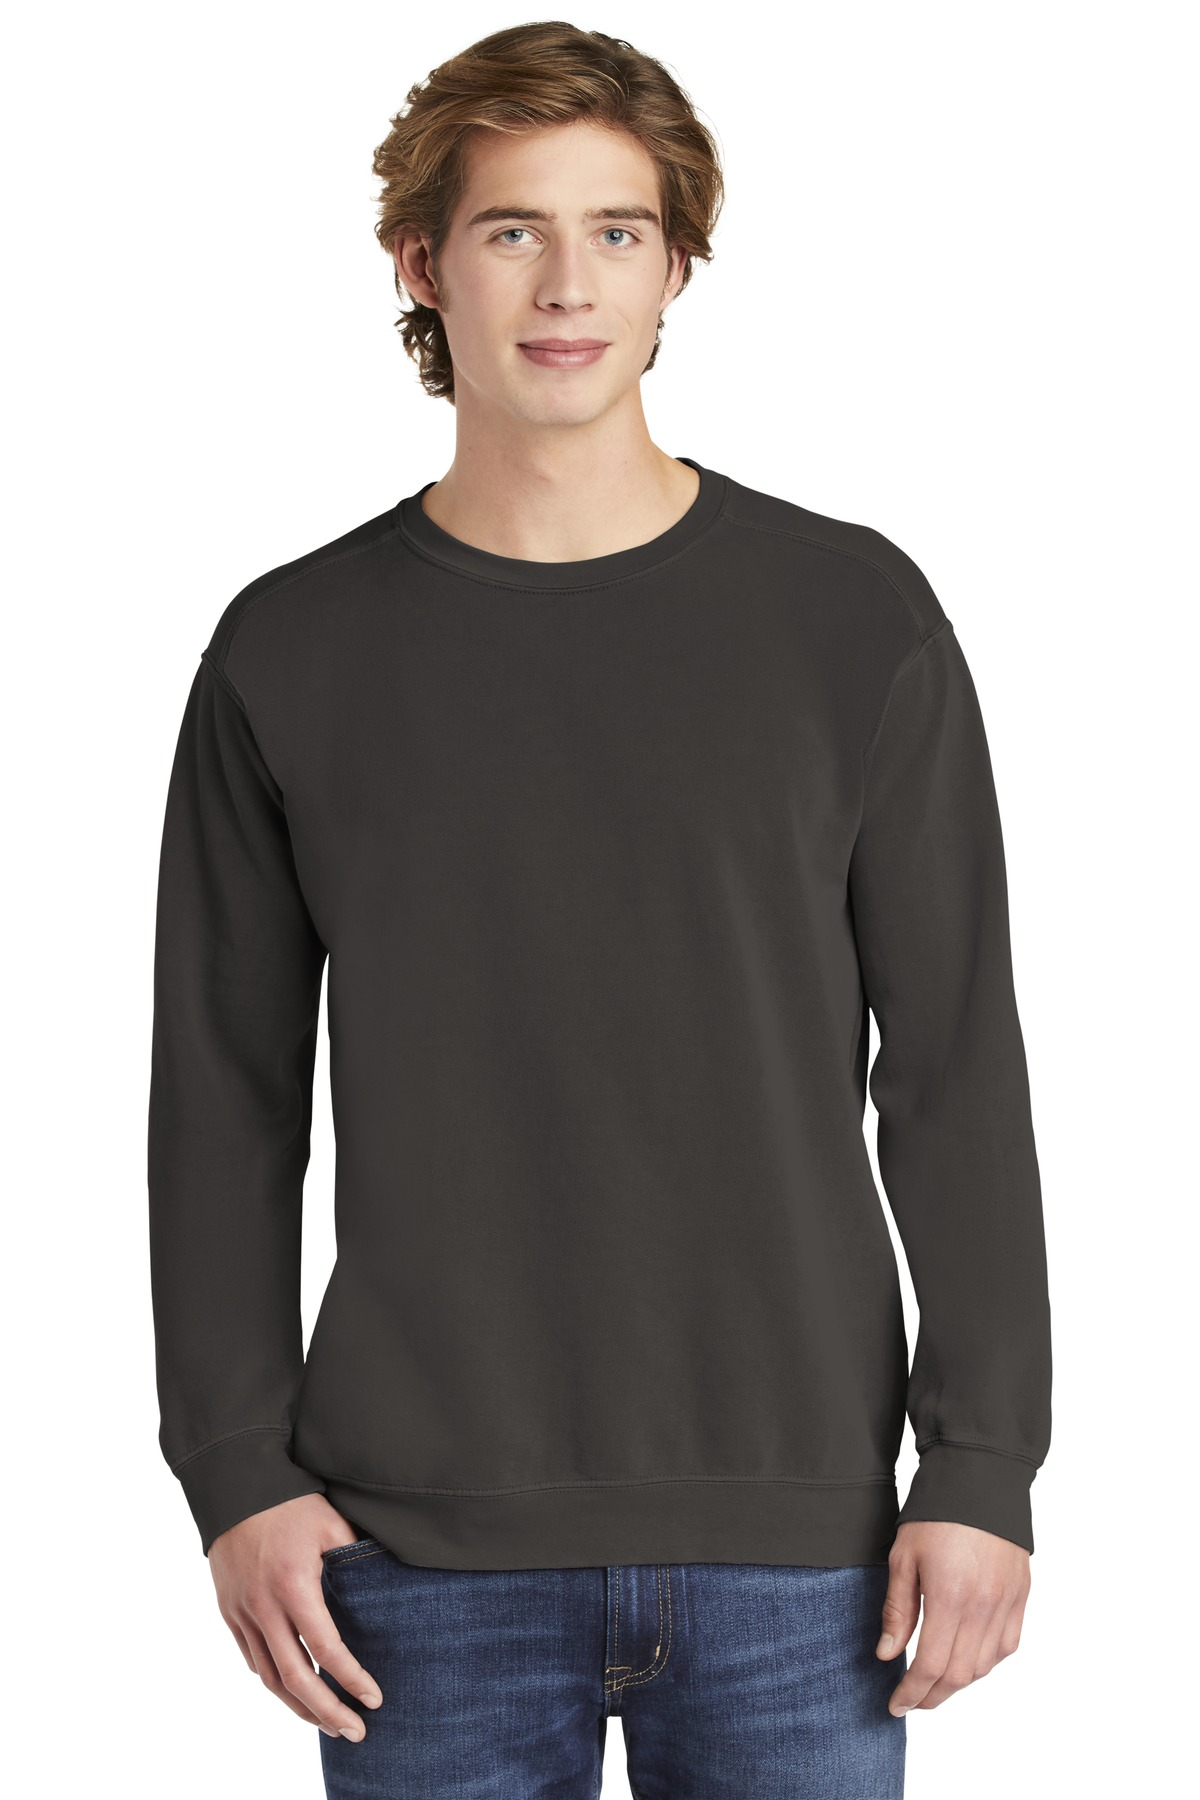 COMFORT COLORS  ®  Ring Spun Crewneck Sweatshirt. 1566 - Pepper